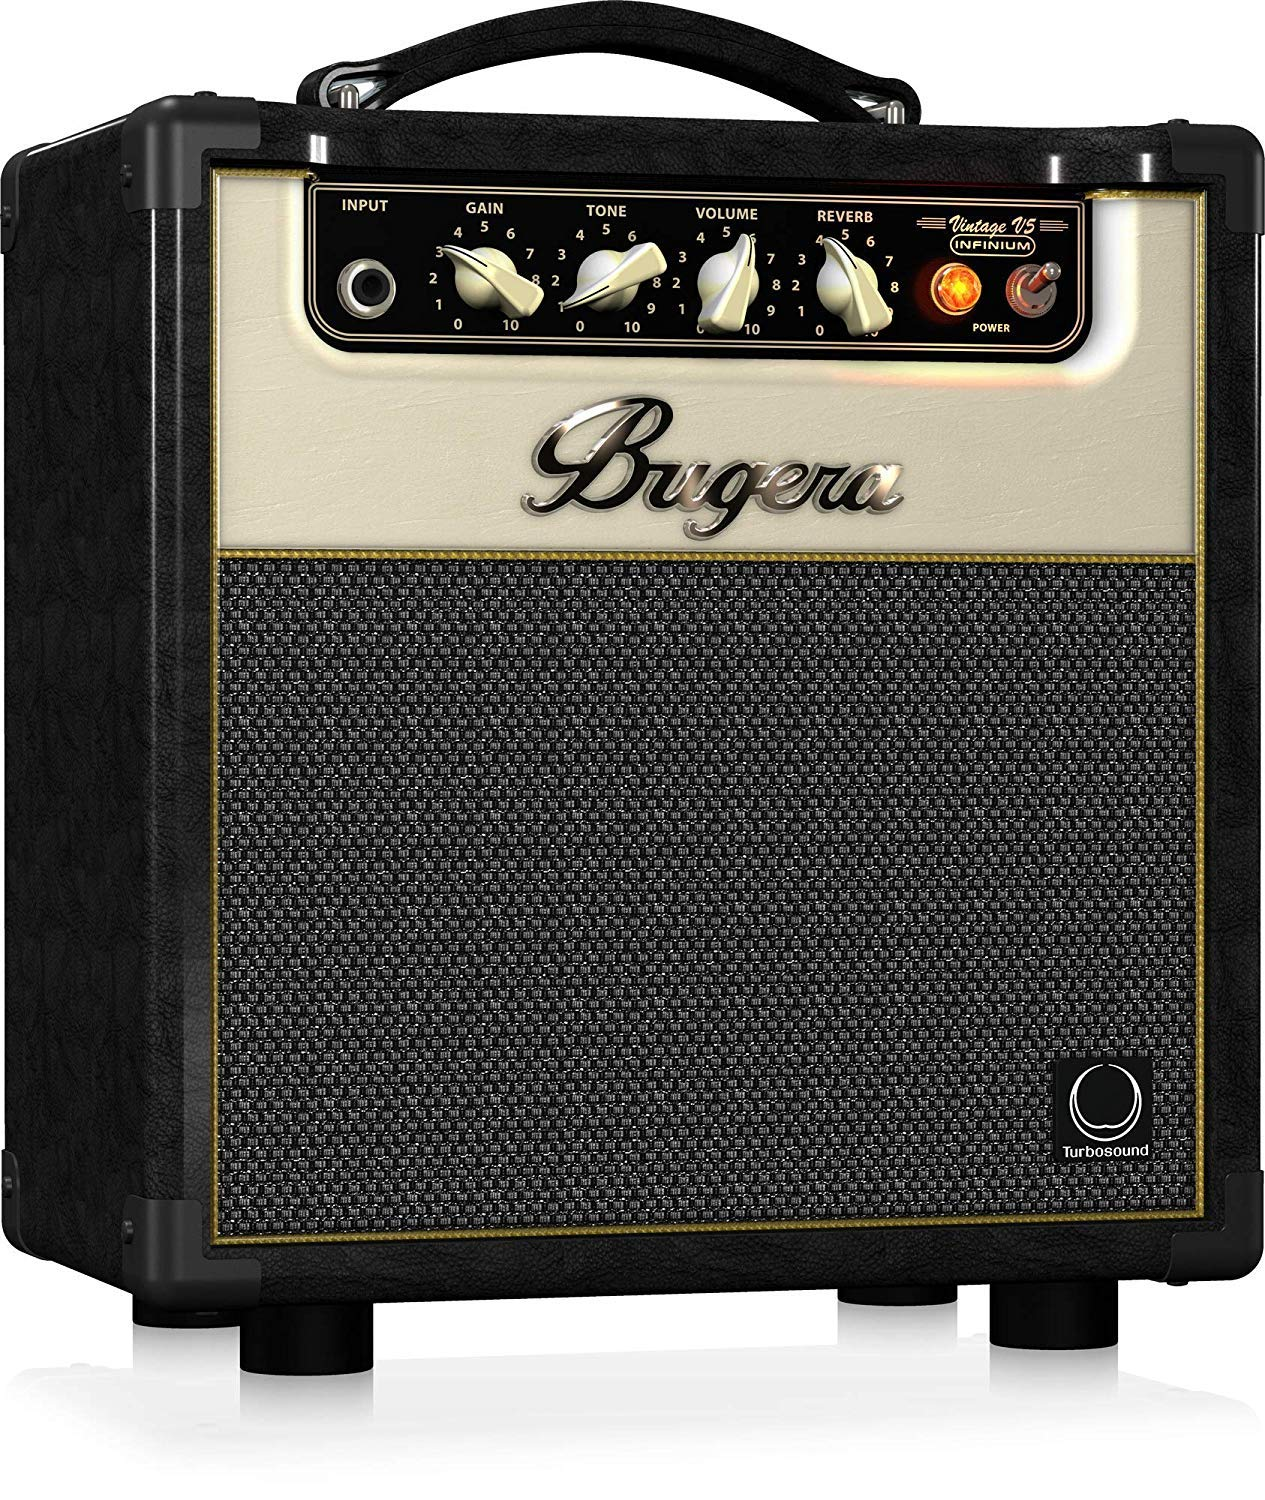 Front View of the Bugera V5 Infinium Class A Tube Amplifier Package